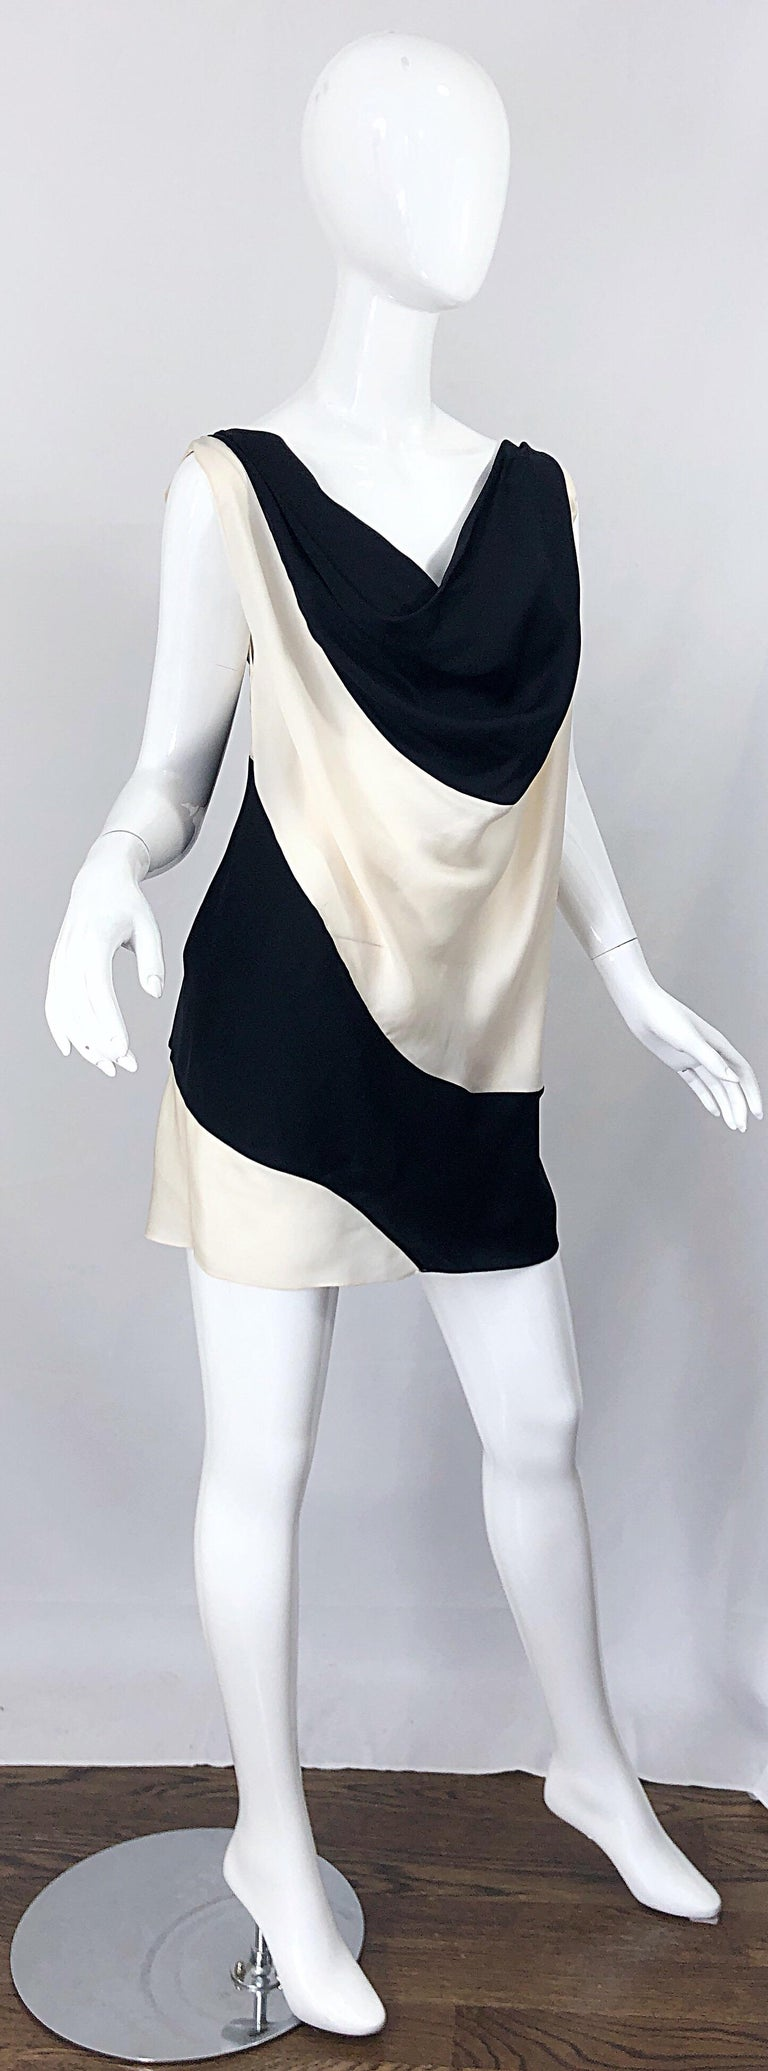 Vintage Donna Karan Runway Collection Black & White Ivory Sz 10 / 12 Tunic Dress In New Condition For Sale In Chicago, IL